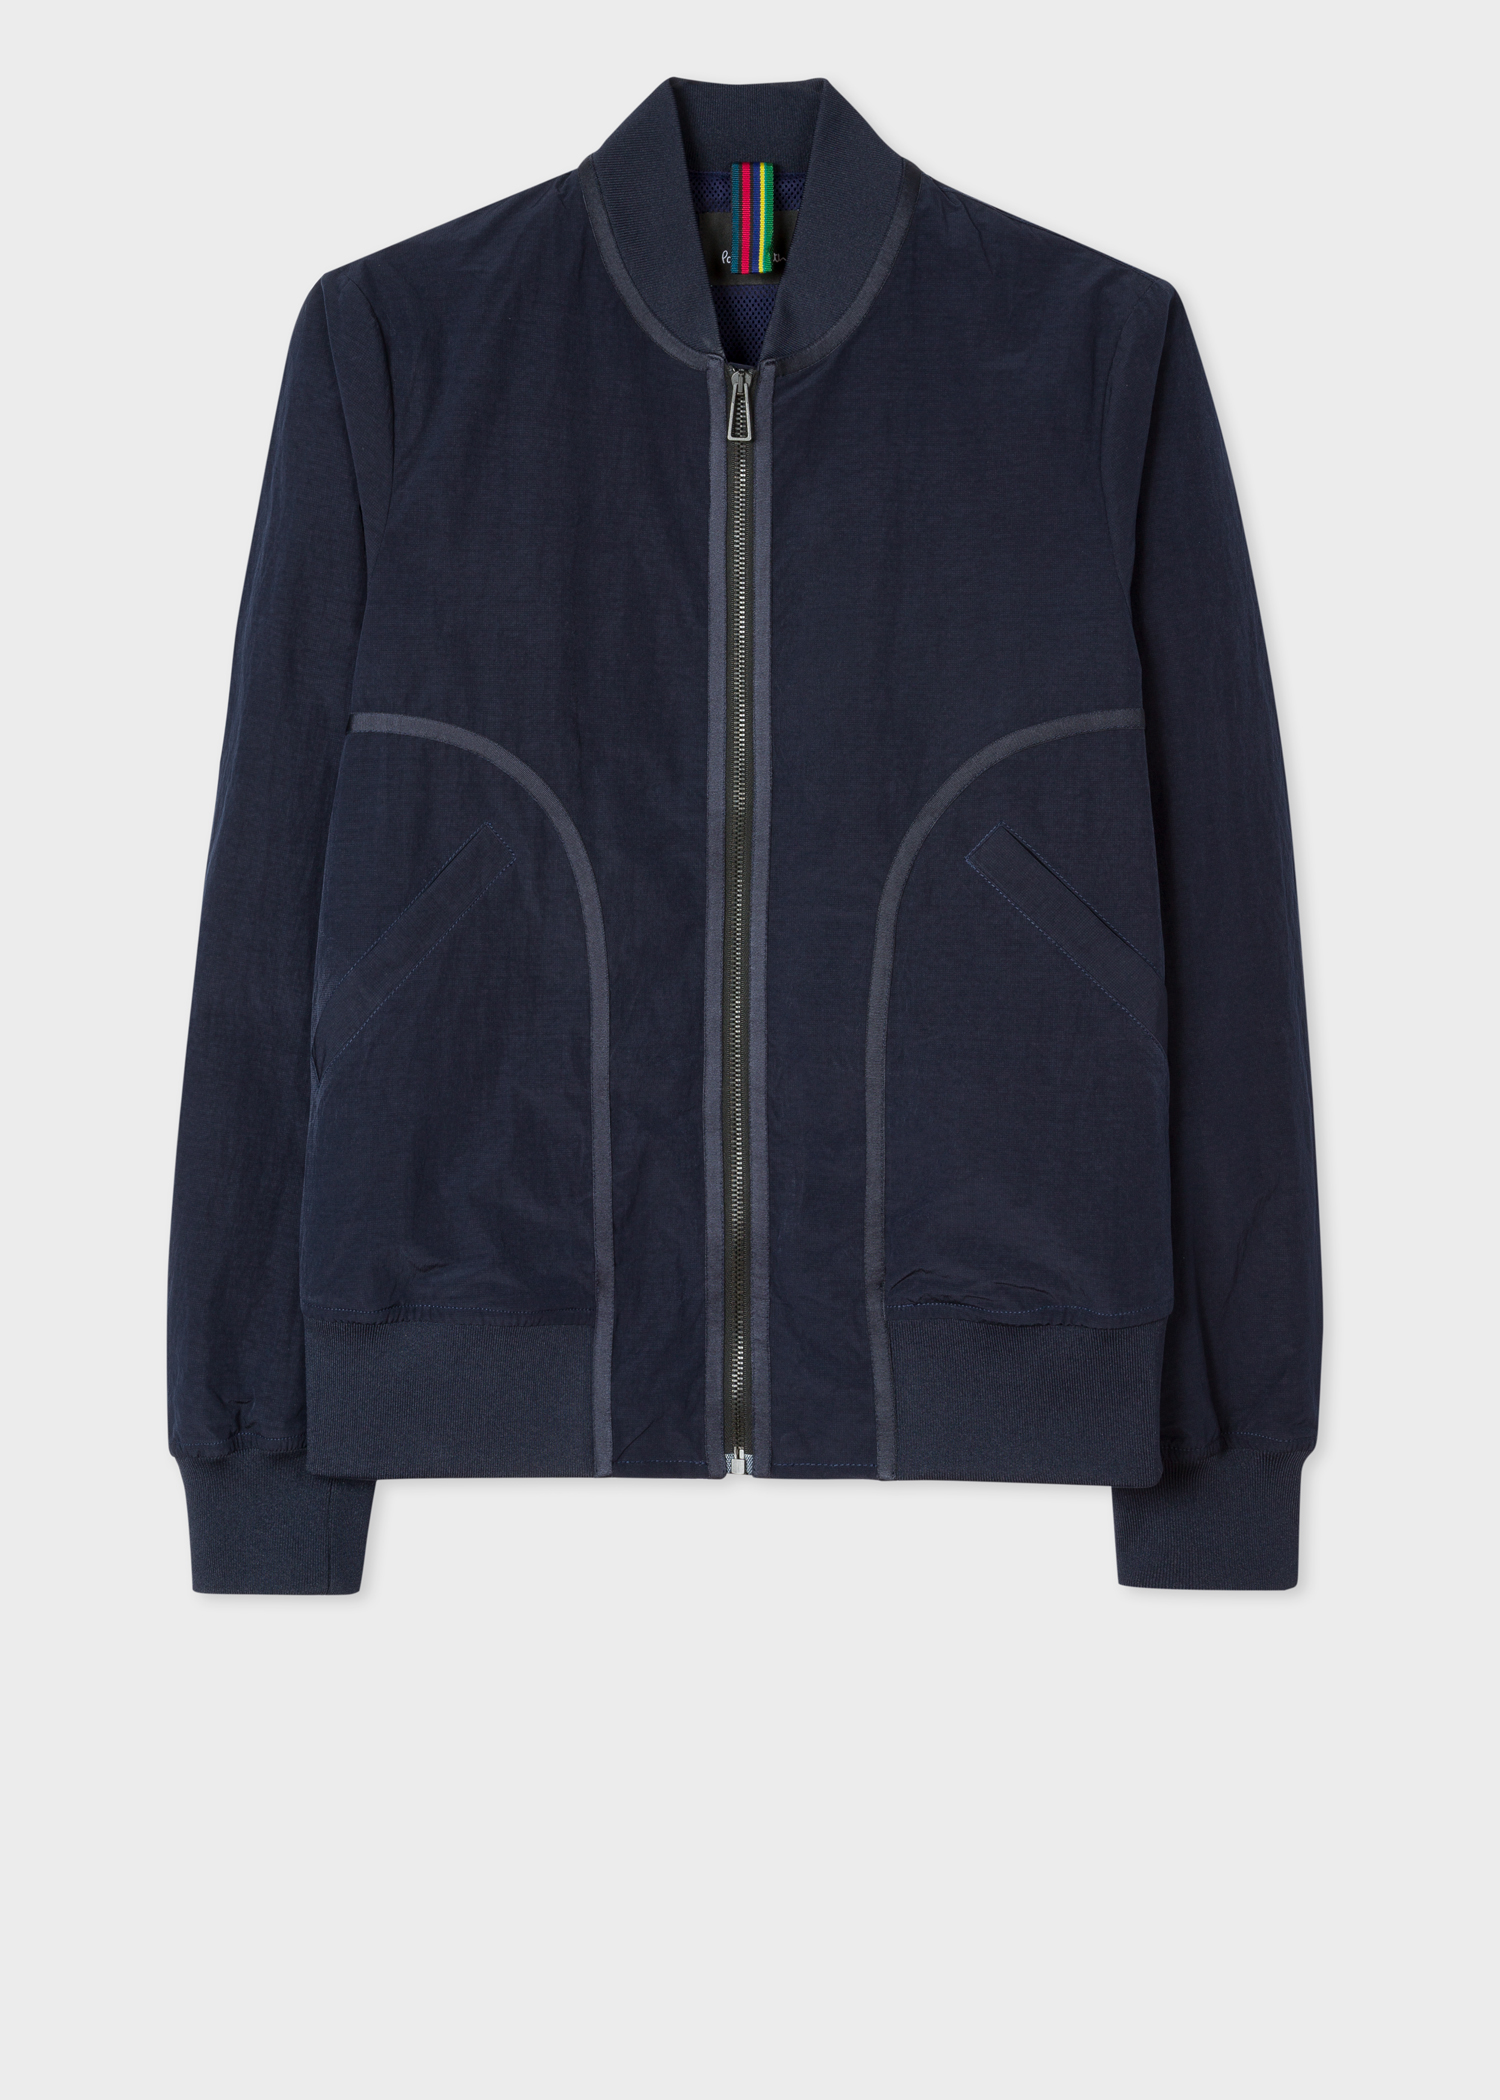 2cdca3aed Men's Navy Panelled Bomber Jacket - Paul Smith Asia